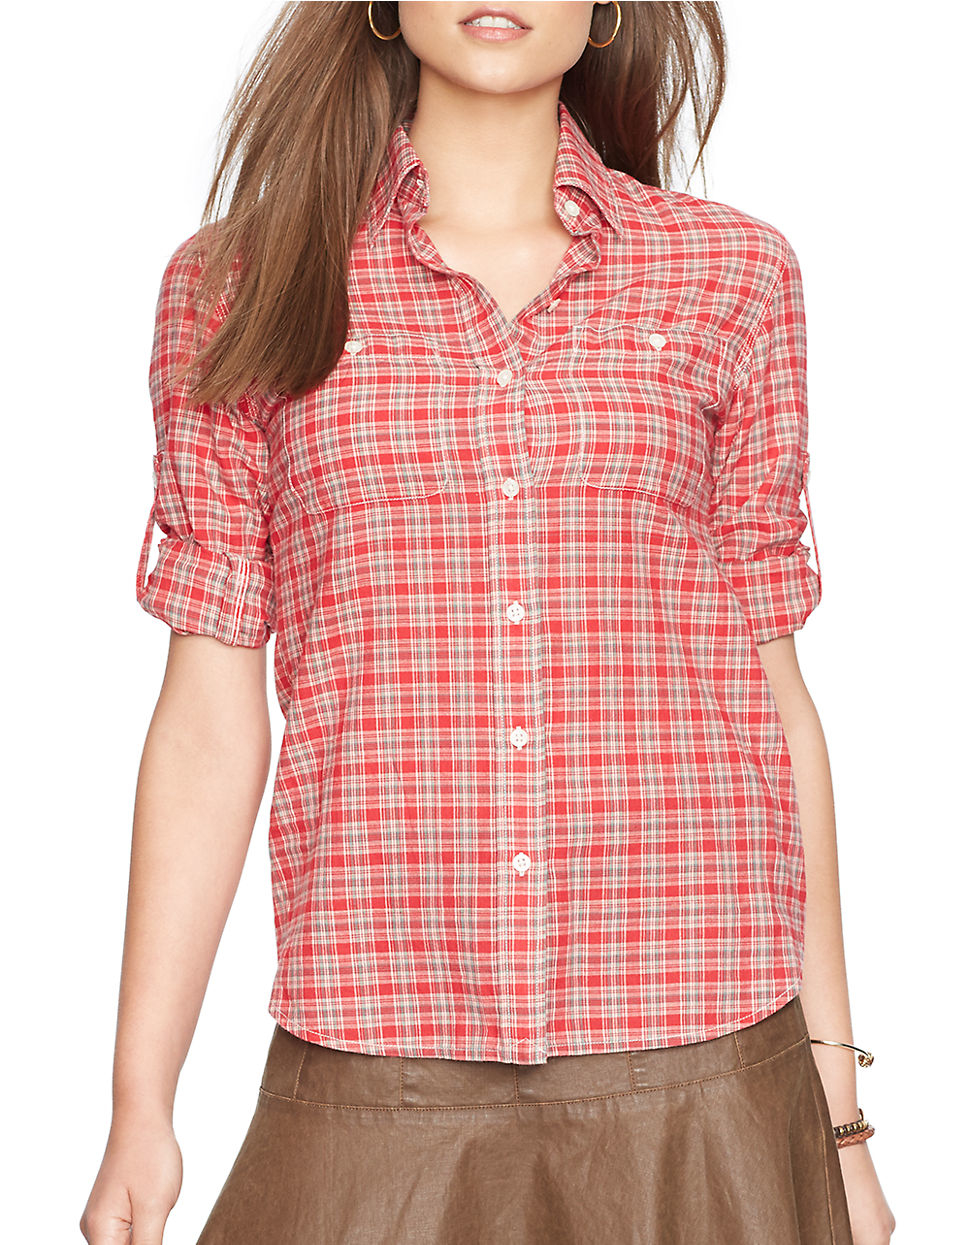 Red House ® Windowpane Plaid Non-Iron Shirt. RH Red House ® - Dobby Non-Iron Button-Down Shirt. RH Red House ® - Mini-Check Non-Iron Button-Down Shirt. RH